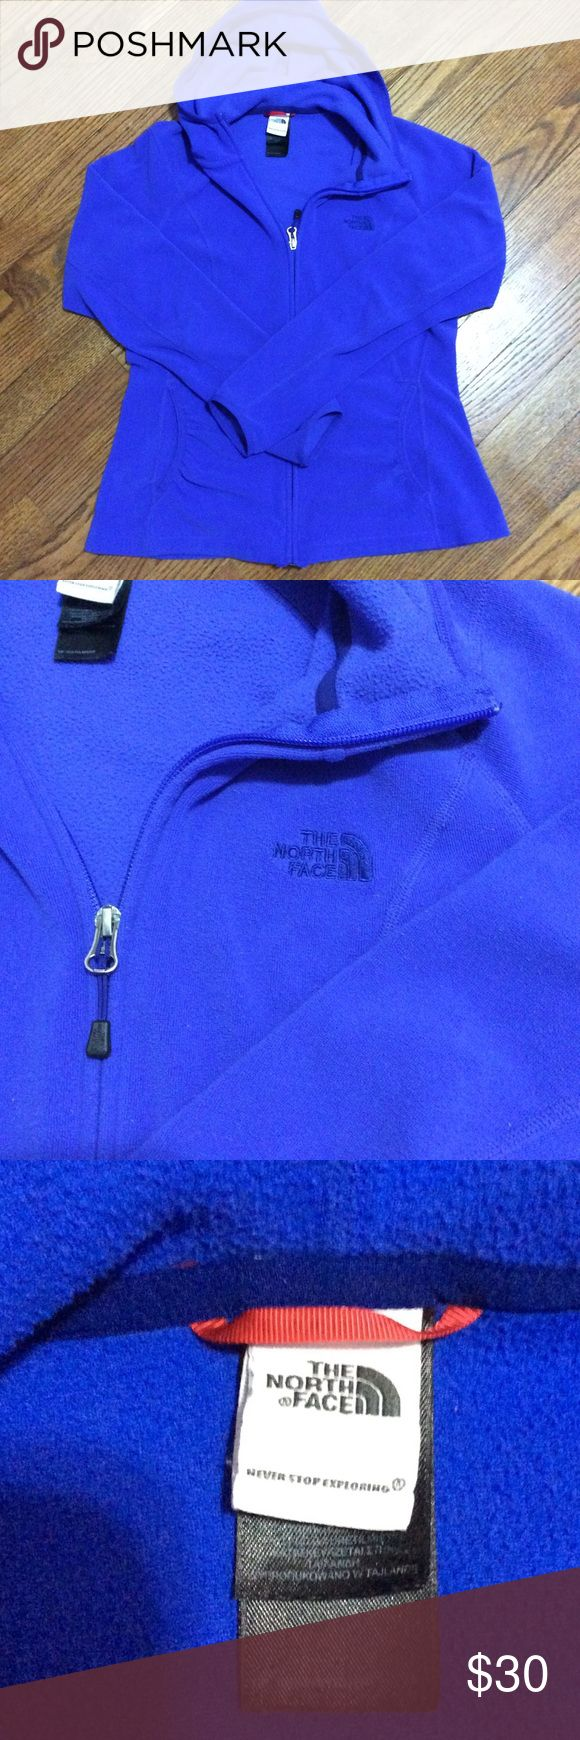 """The North Face 100 Masonic Hoodie A warm feminine cut Polartec Classic fleece hoodie that's warm at every layer...the 100 Masonic Hoodie has a full zip closure, thermally efficient, quick drying and 2 front gathered pockets. Resists pilling, fading and maintains shape but does have some stretch. Beautiful royal blue. P-P 18"""" S-H 22"""" Sleeve 23"""" The North Face Jackets & Coats"""